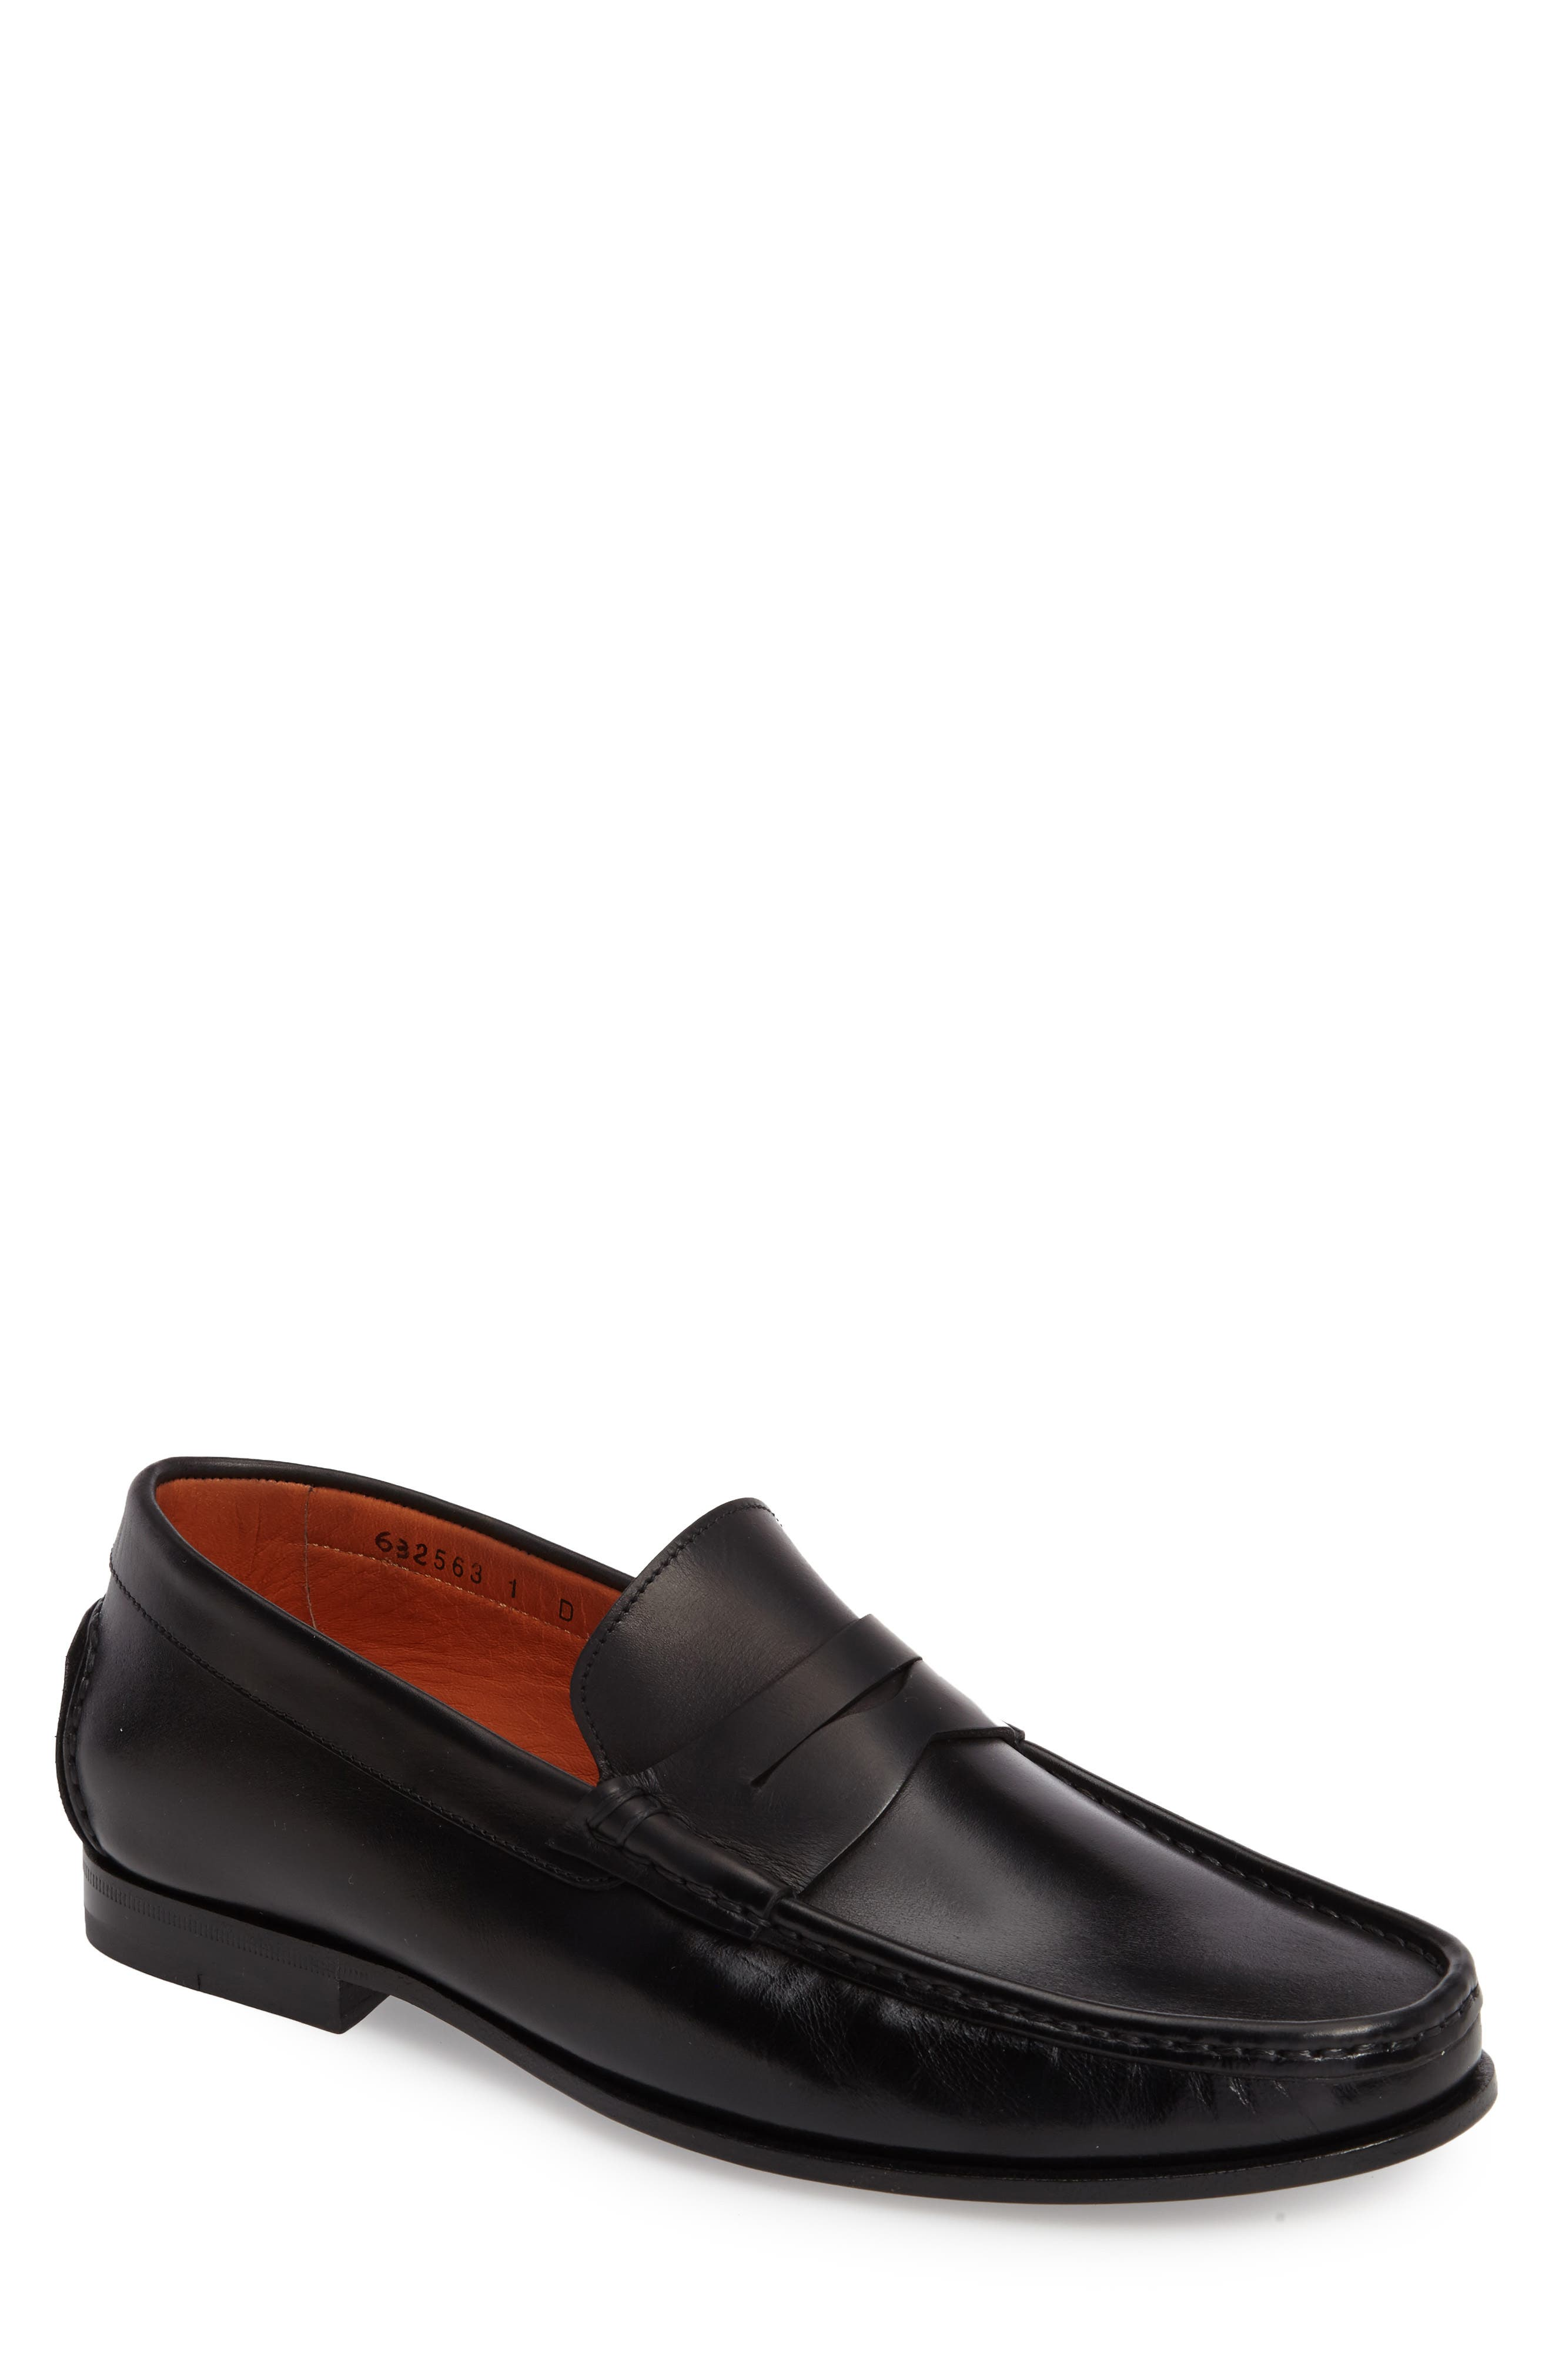 Fergus Penny Loafer,                         Main,                         color, BLACK LEATHER